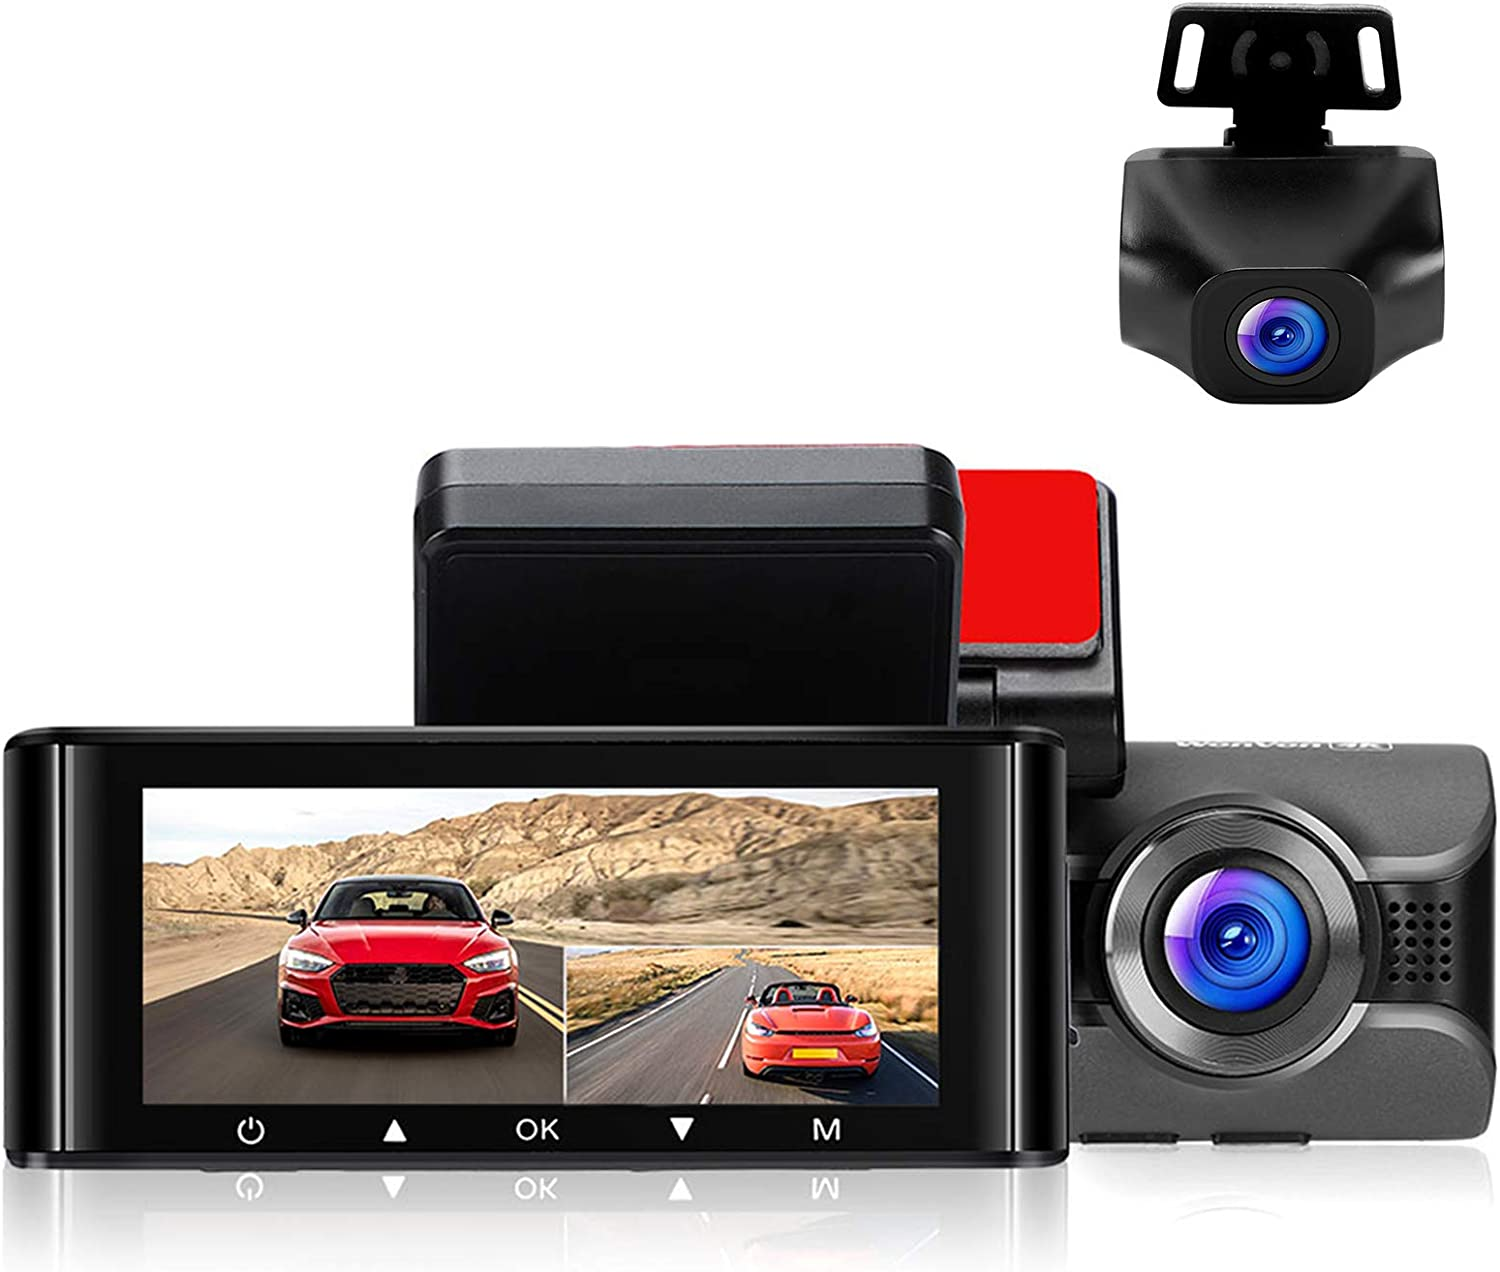 Amazon Com Dash Cam For Cars 4k Front Dashboard Camera And 1080p Rear Dashcam W4k Wifi Driving Recorder With 3 16 Ips Screen Night Vision Gps Parking Mode G Sensor Wdr Loop Recording Super Capacitor